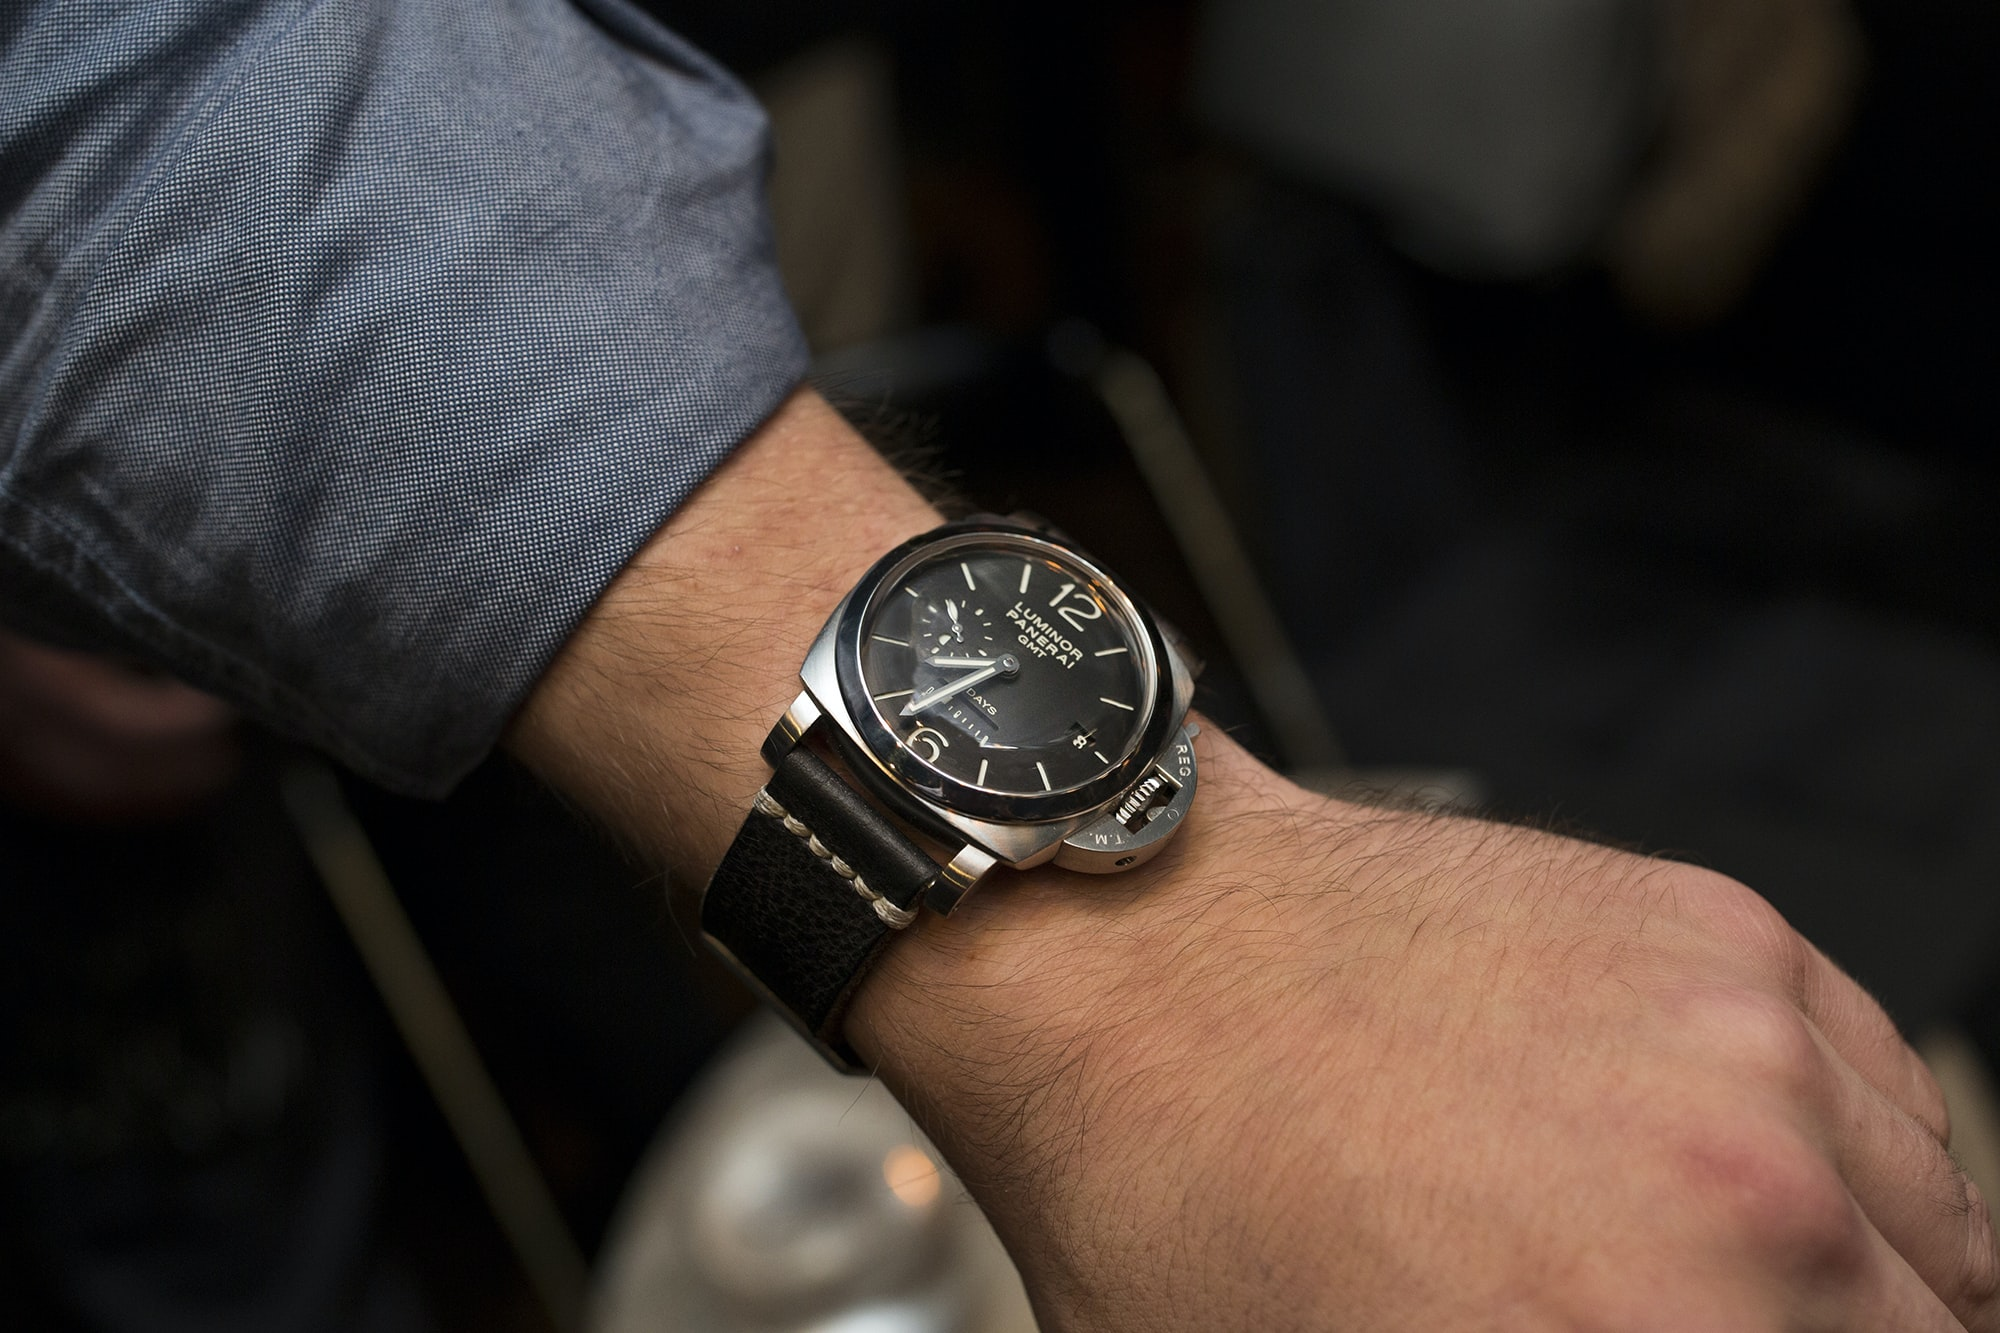 Photo Report: Celebrating The Panerai Luminor Due Collection In New York Photo Report: Celebrating The Panerai Luminor Due Collection In New York  B89A7399 copy